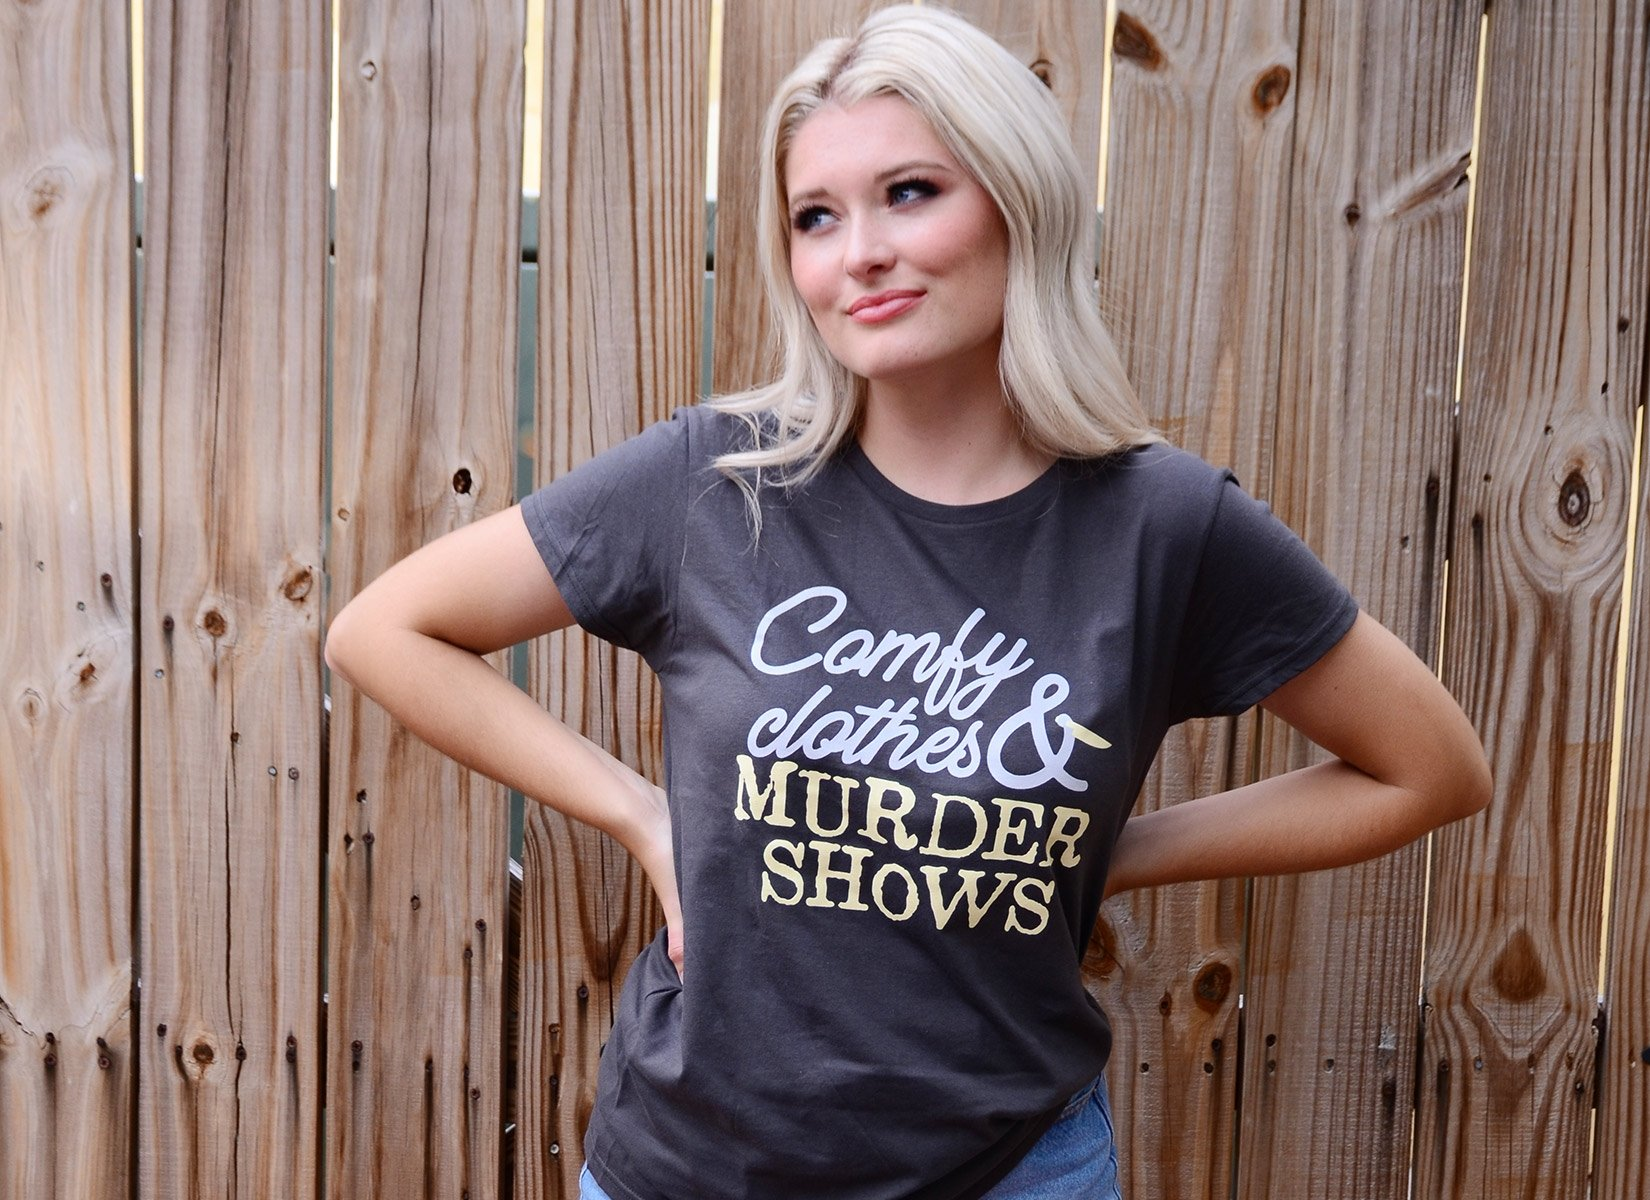 Comfy Clothes & Murder Shows on Womens T-Shirt